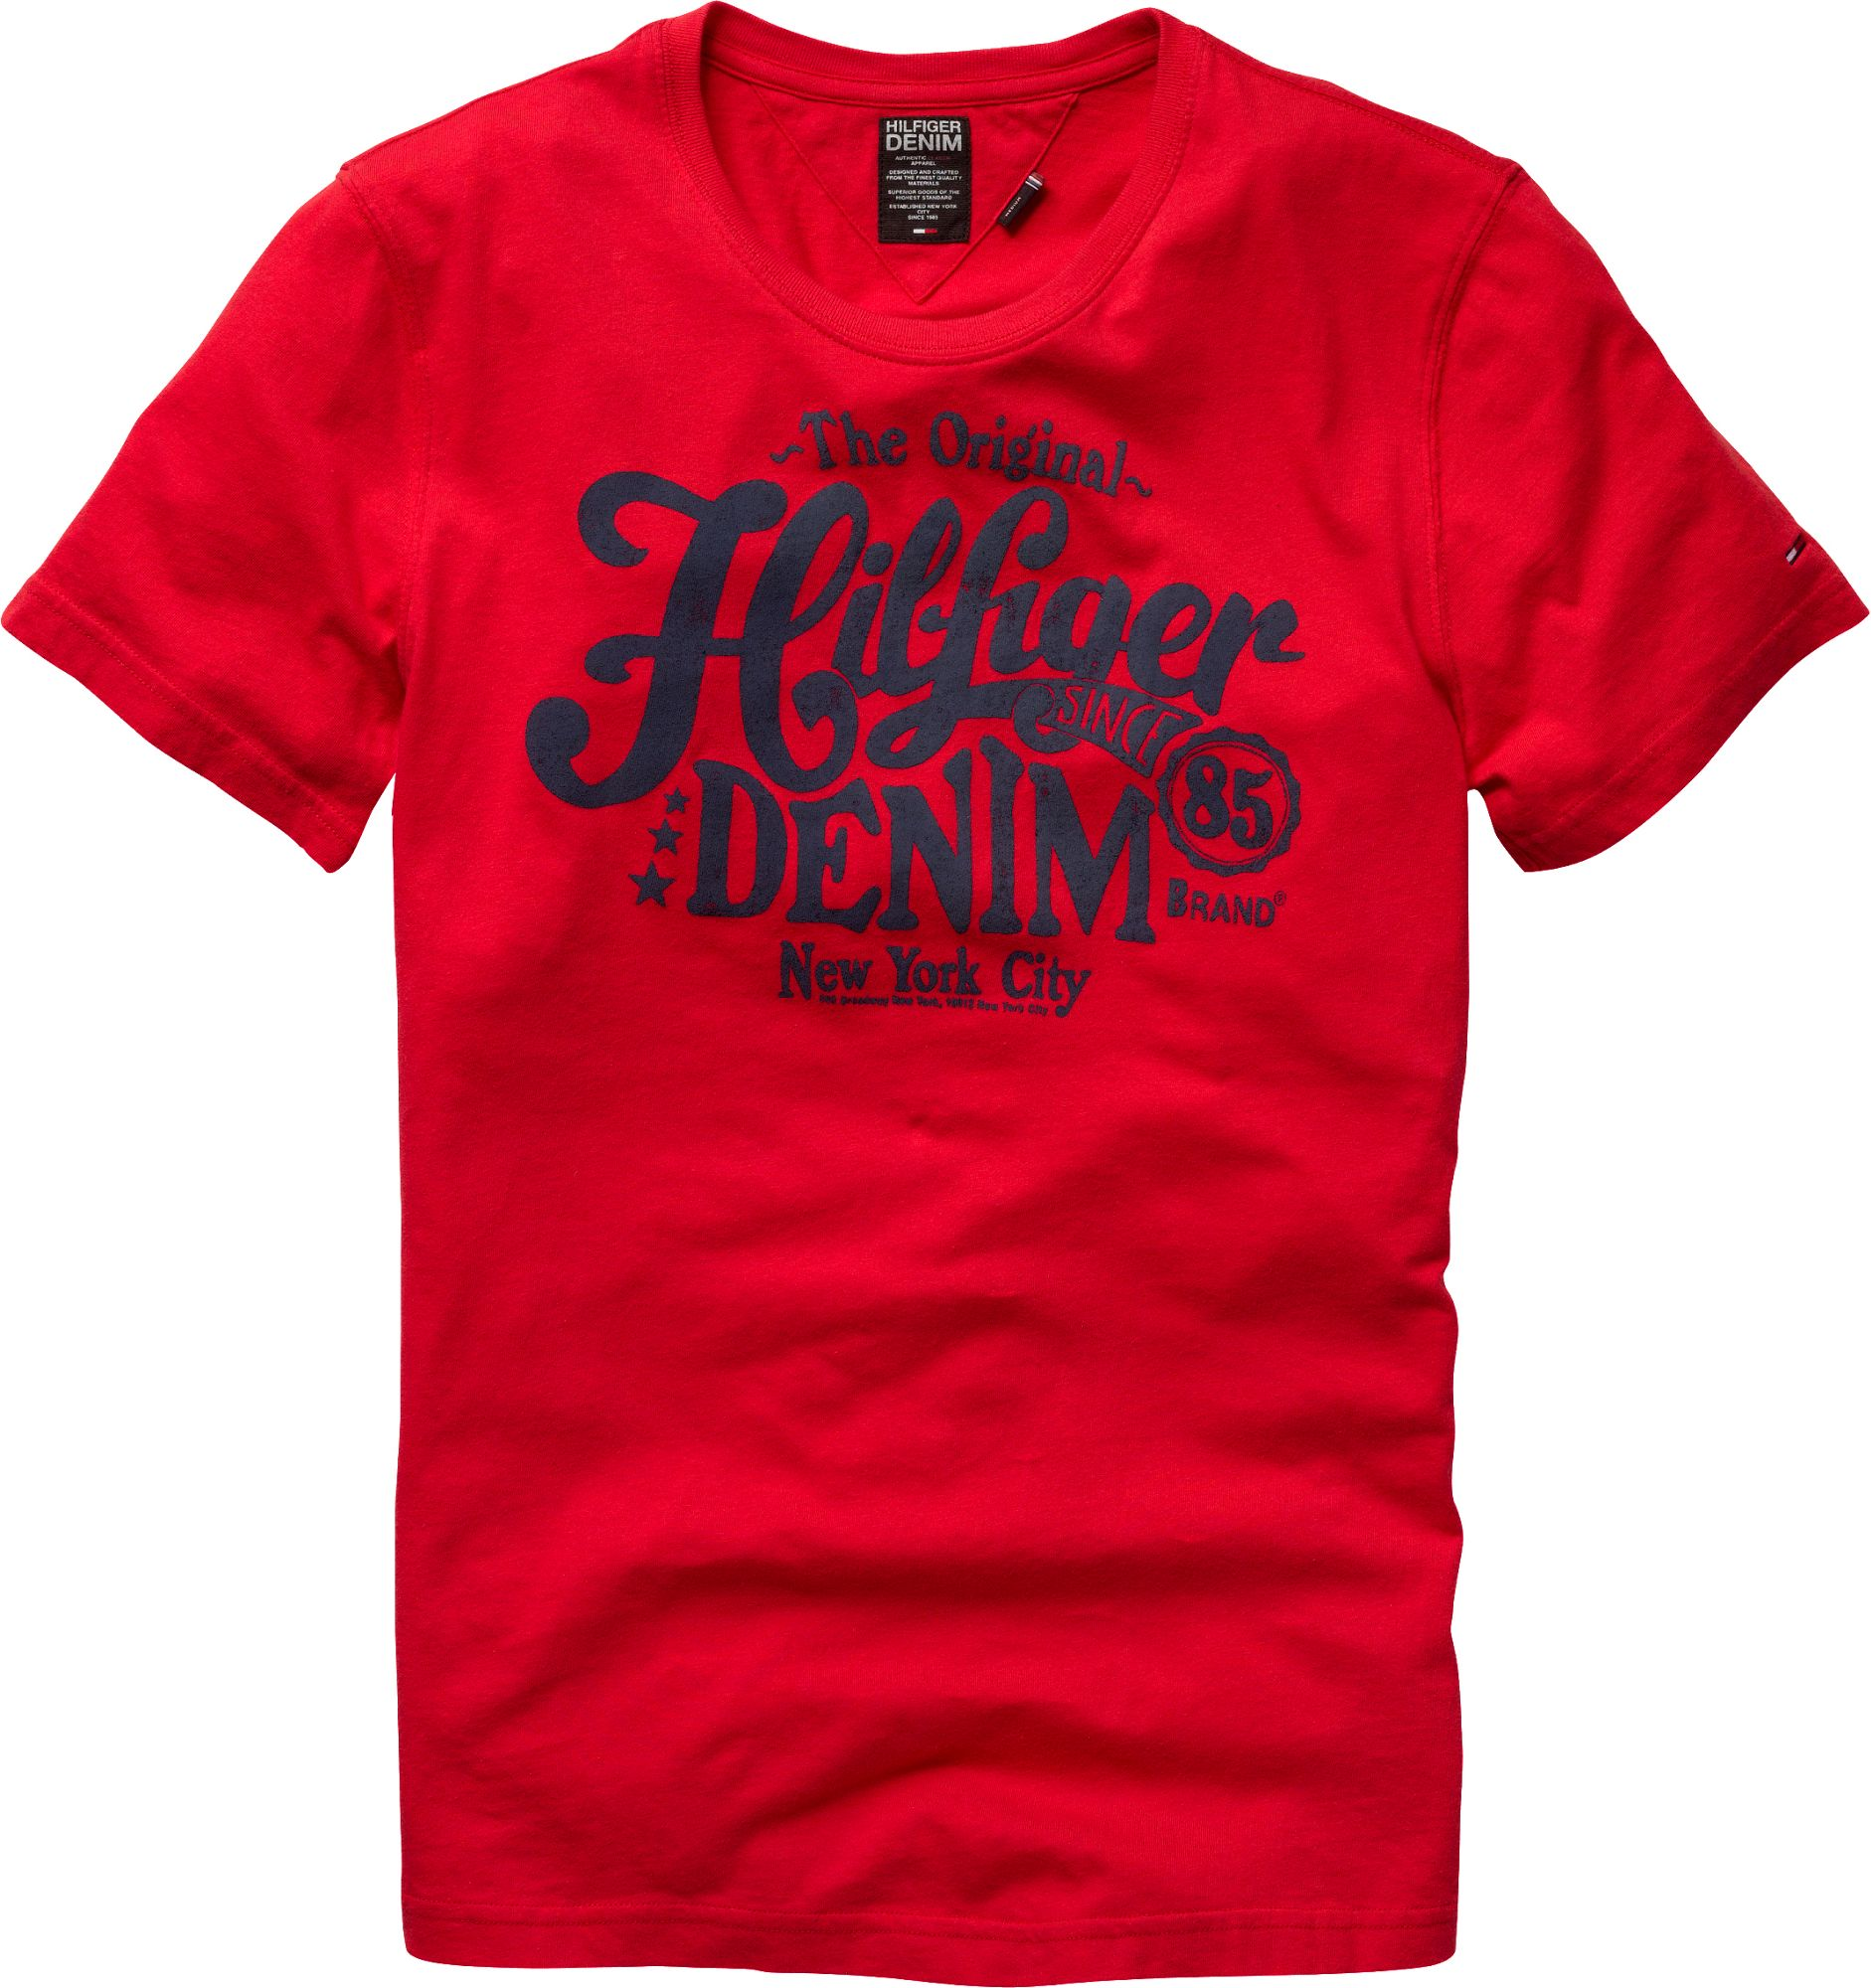 tommy hilfiger federer original hilfiger denim tshirt in red for men. Black Bedroom Furniture Sets. Home Design Ideas